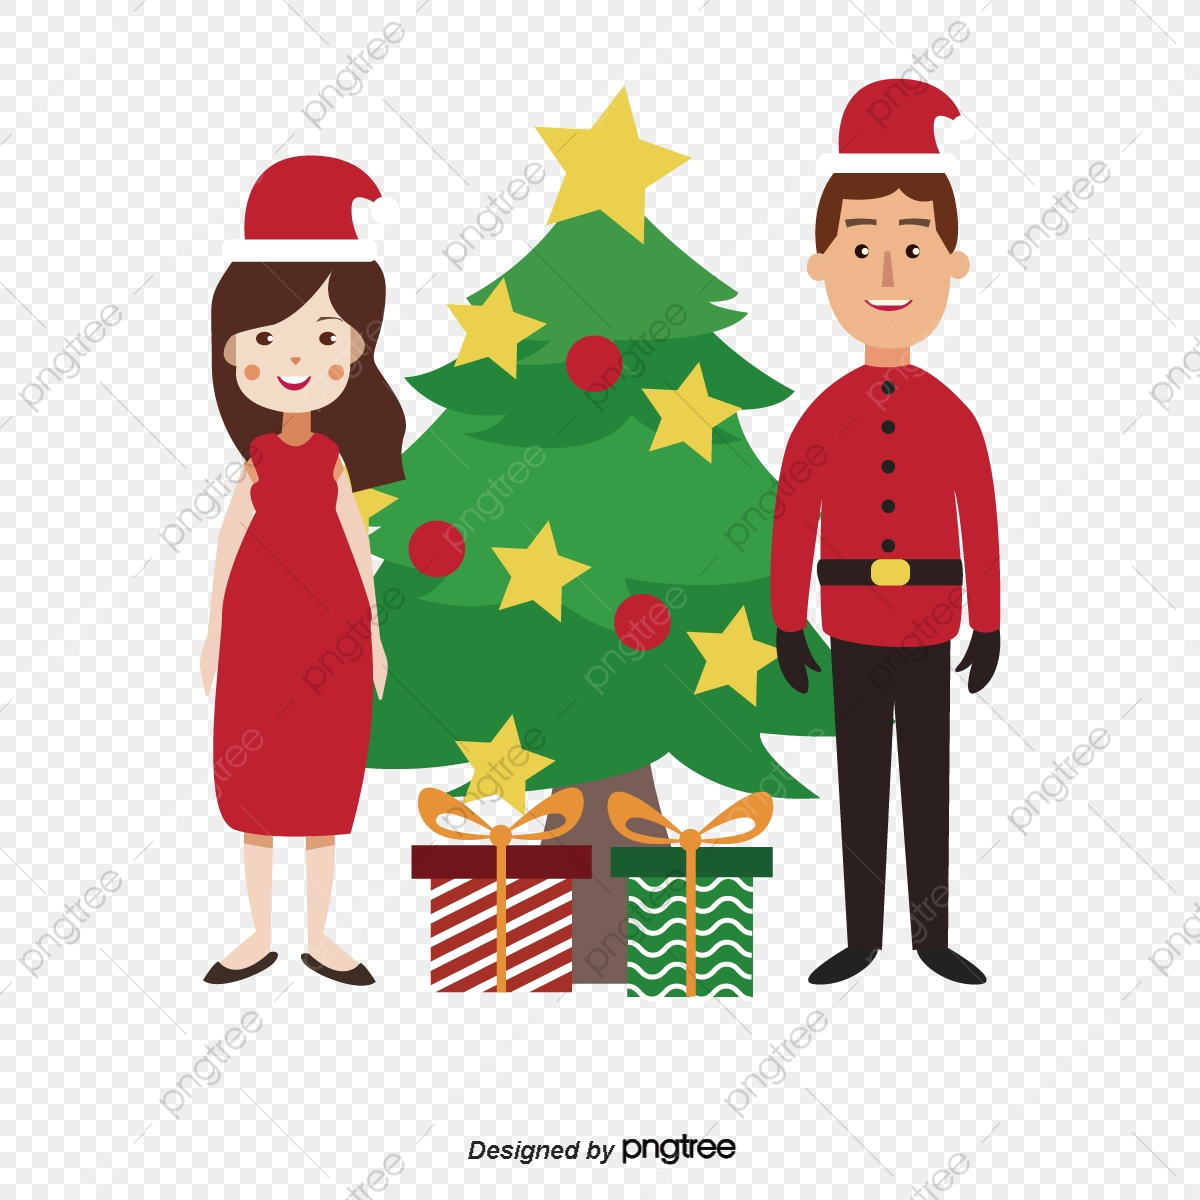 Cartoon Cute Hand Drawn Christmas Family Cartoon Lovely Christmas Png And Vector With Transparent Background For Free Download